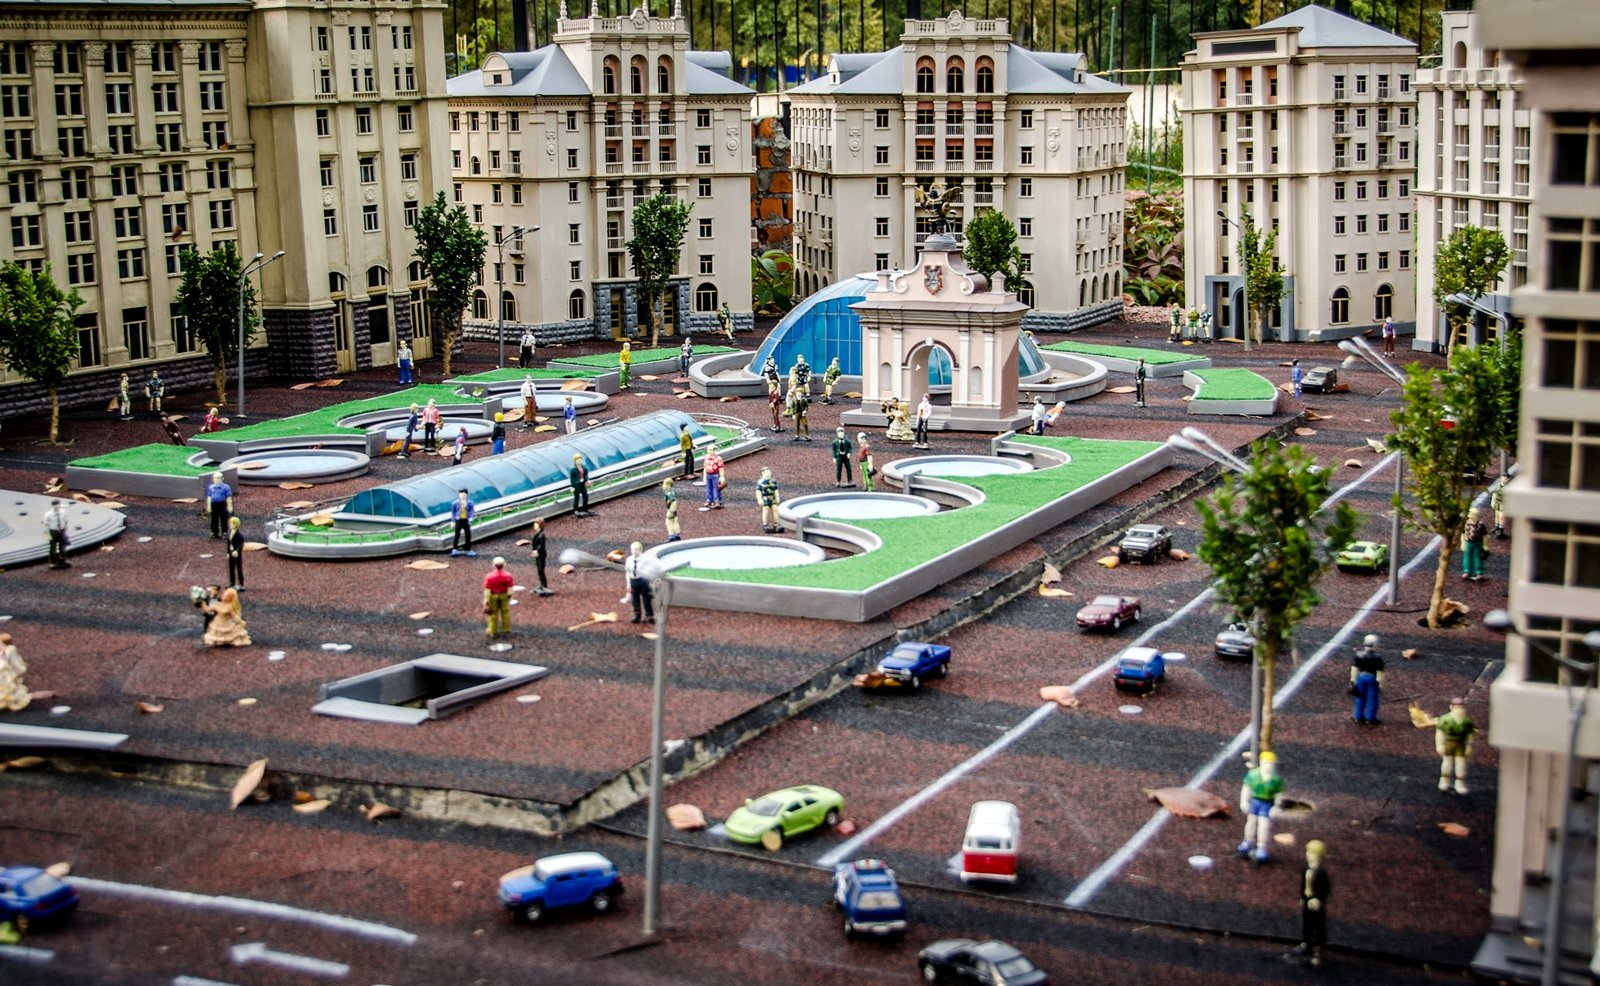 How to see Ukraine in miniature in Kiev